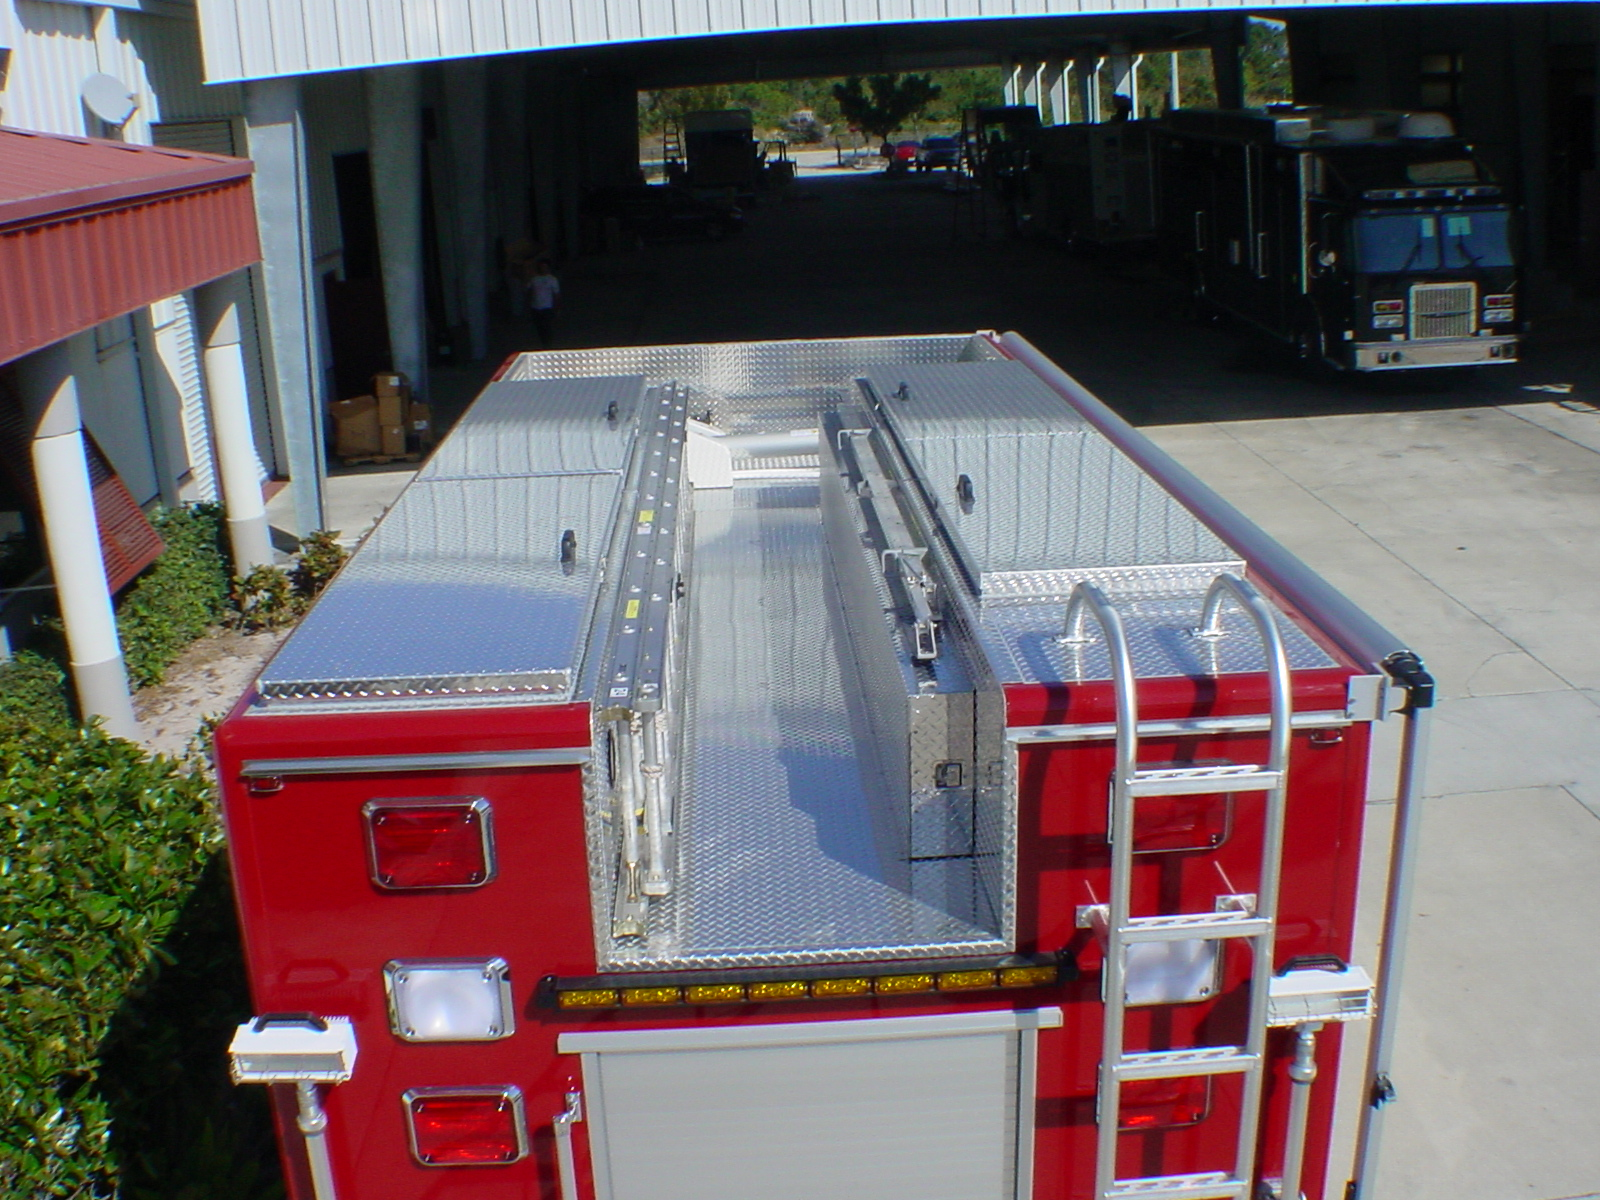 16-Ft. Non-Walk-In Rescue Apparatus